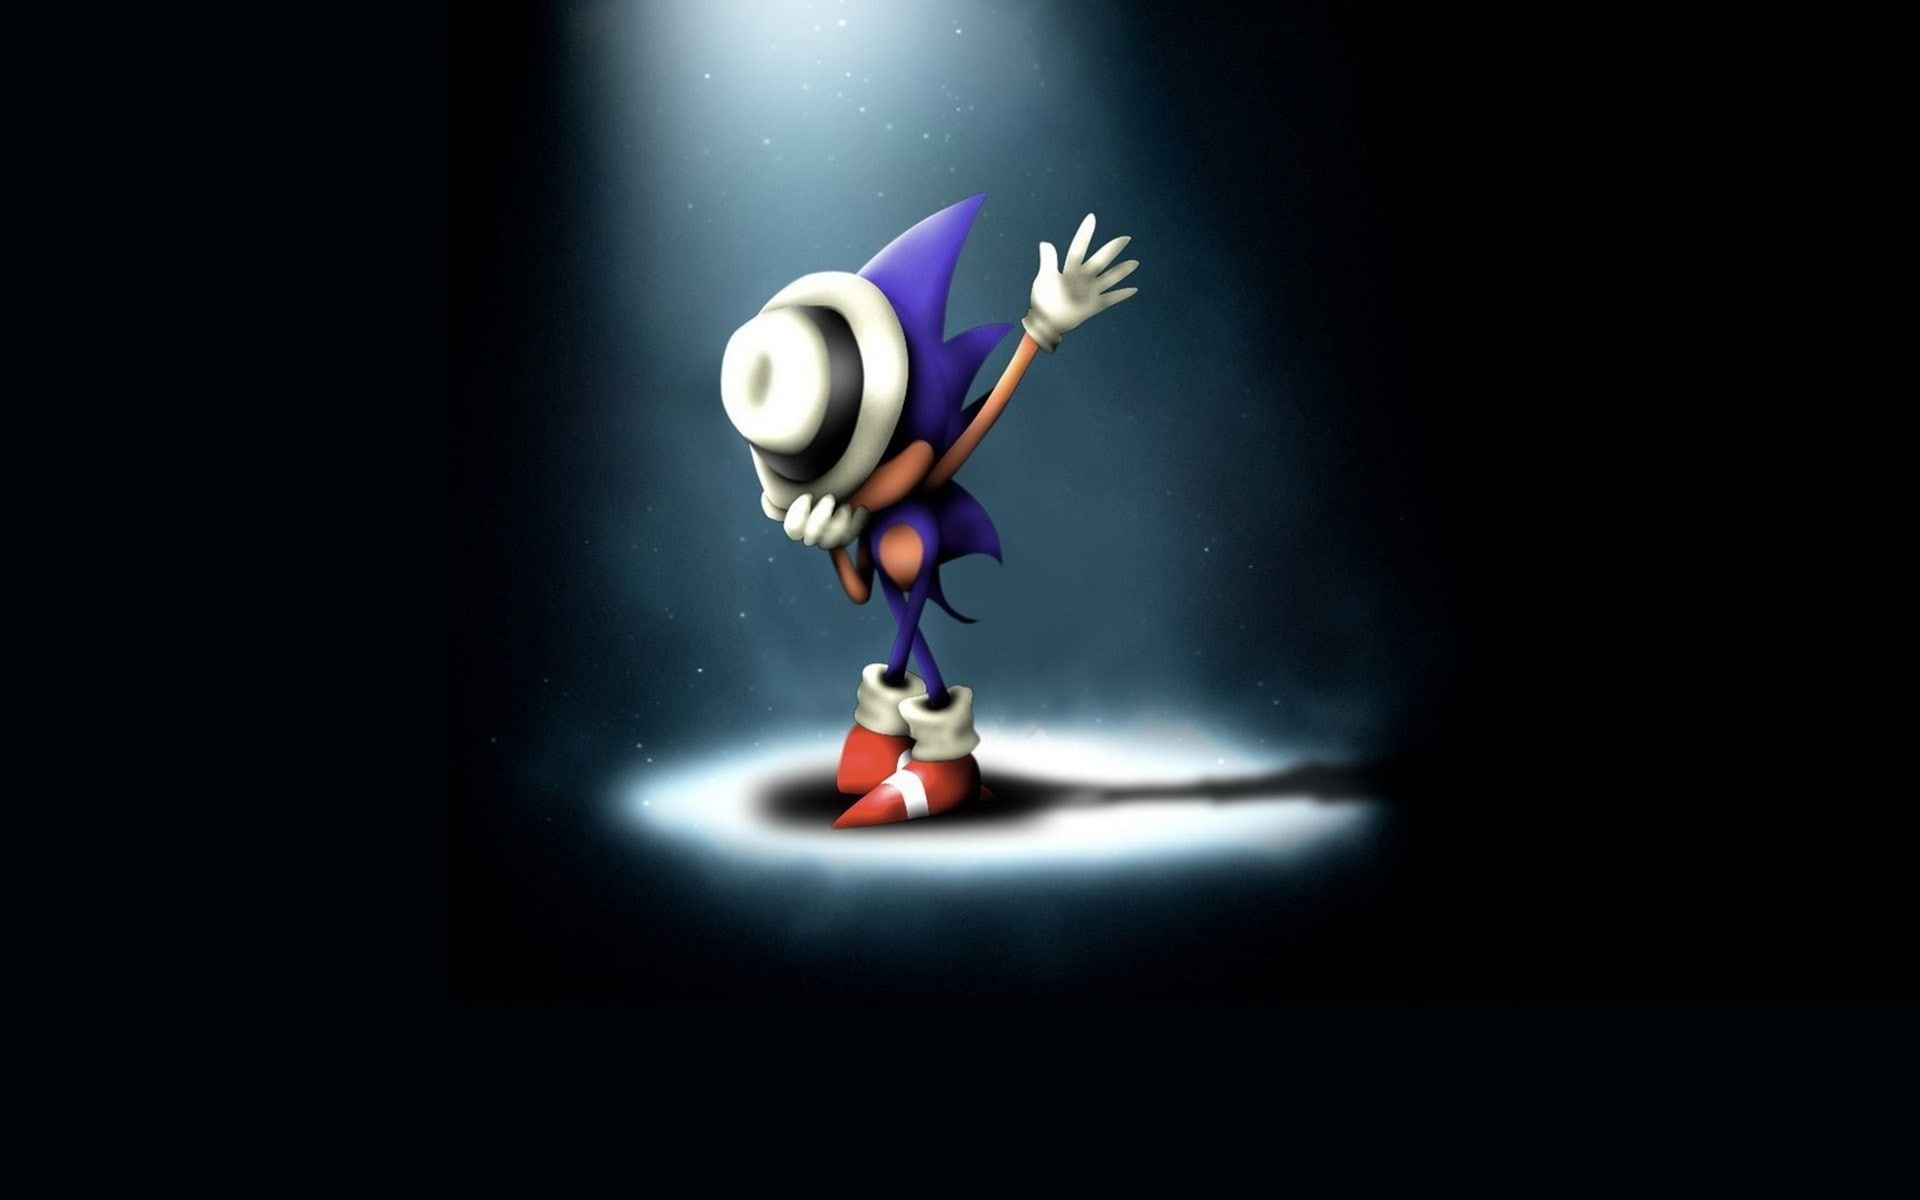 Sonic The Hedgehog 1080p Wallpaper Hdwallpaper Desktop In 2020 Cartoon Wallpaper Wallpaper Graphic Wallpaper